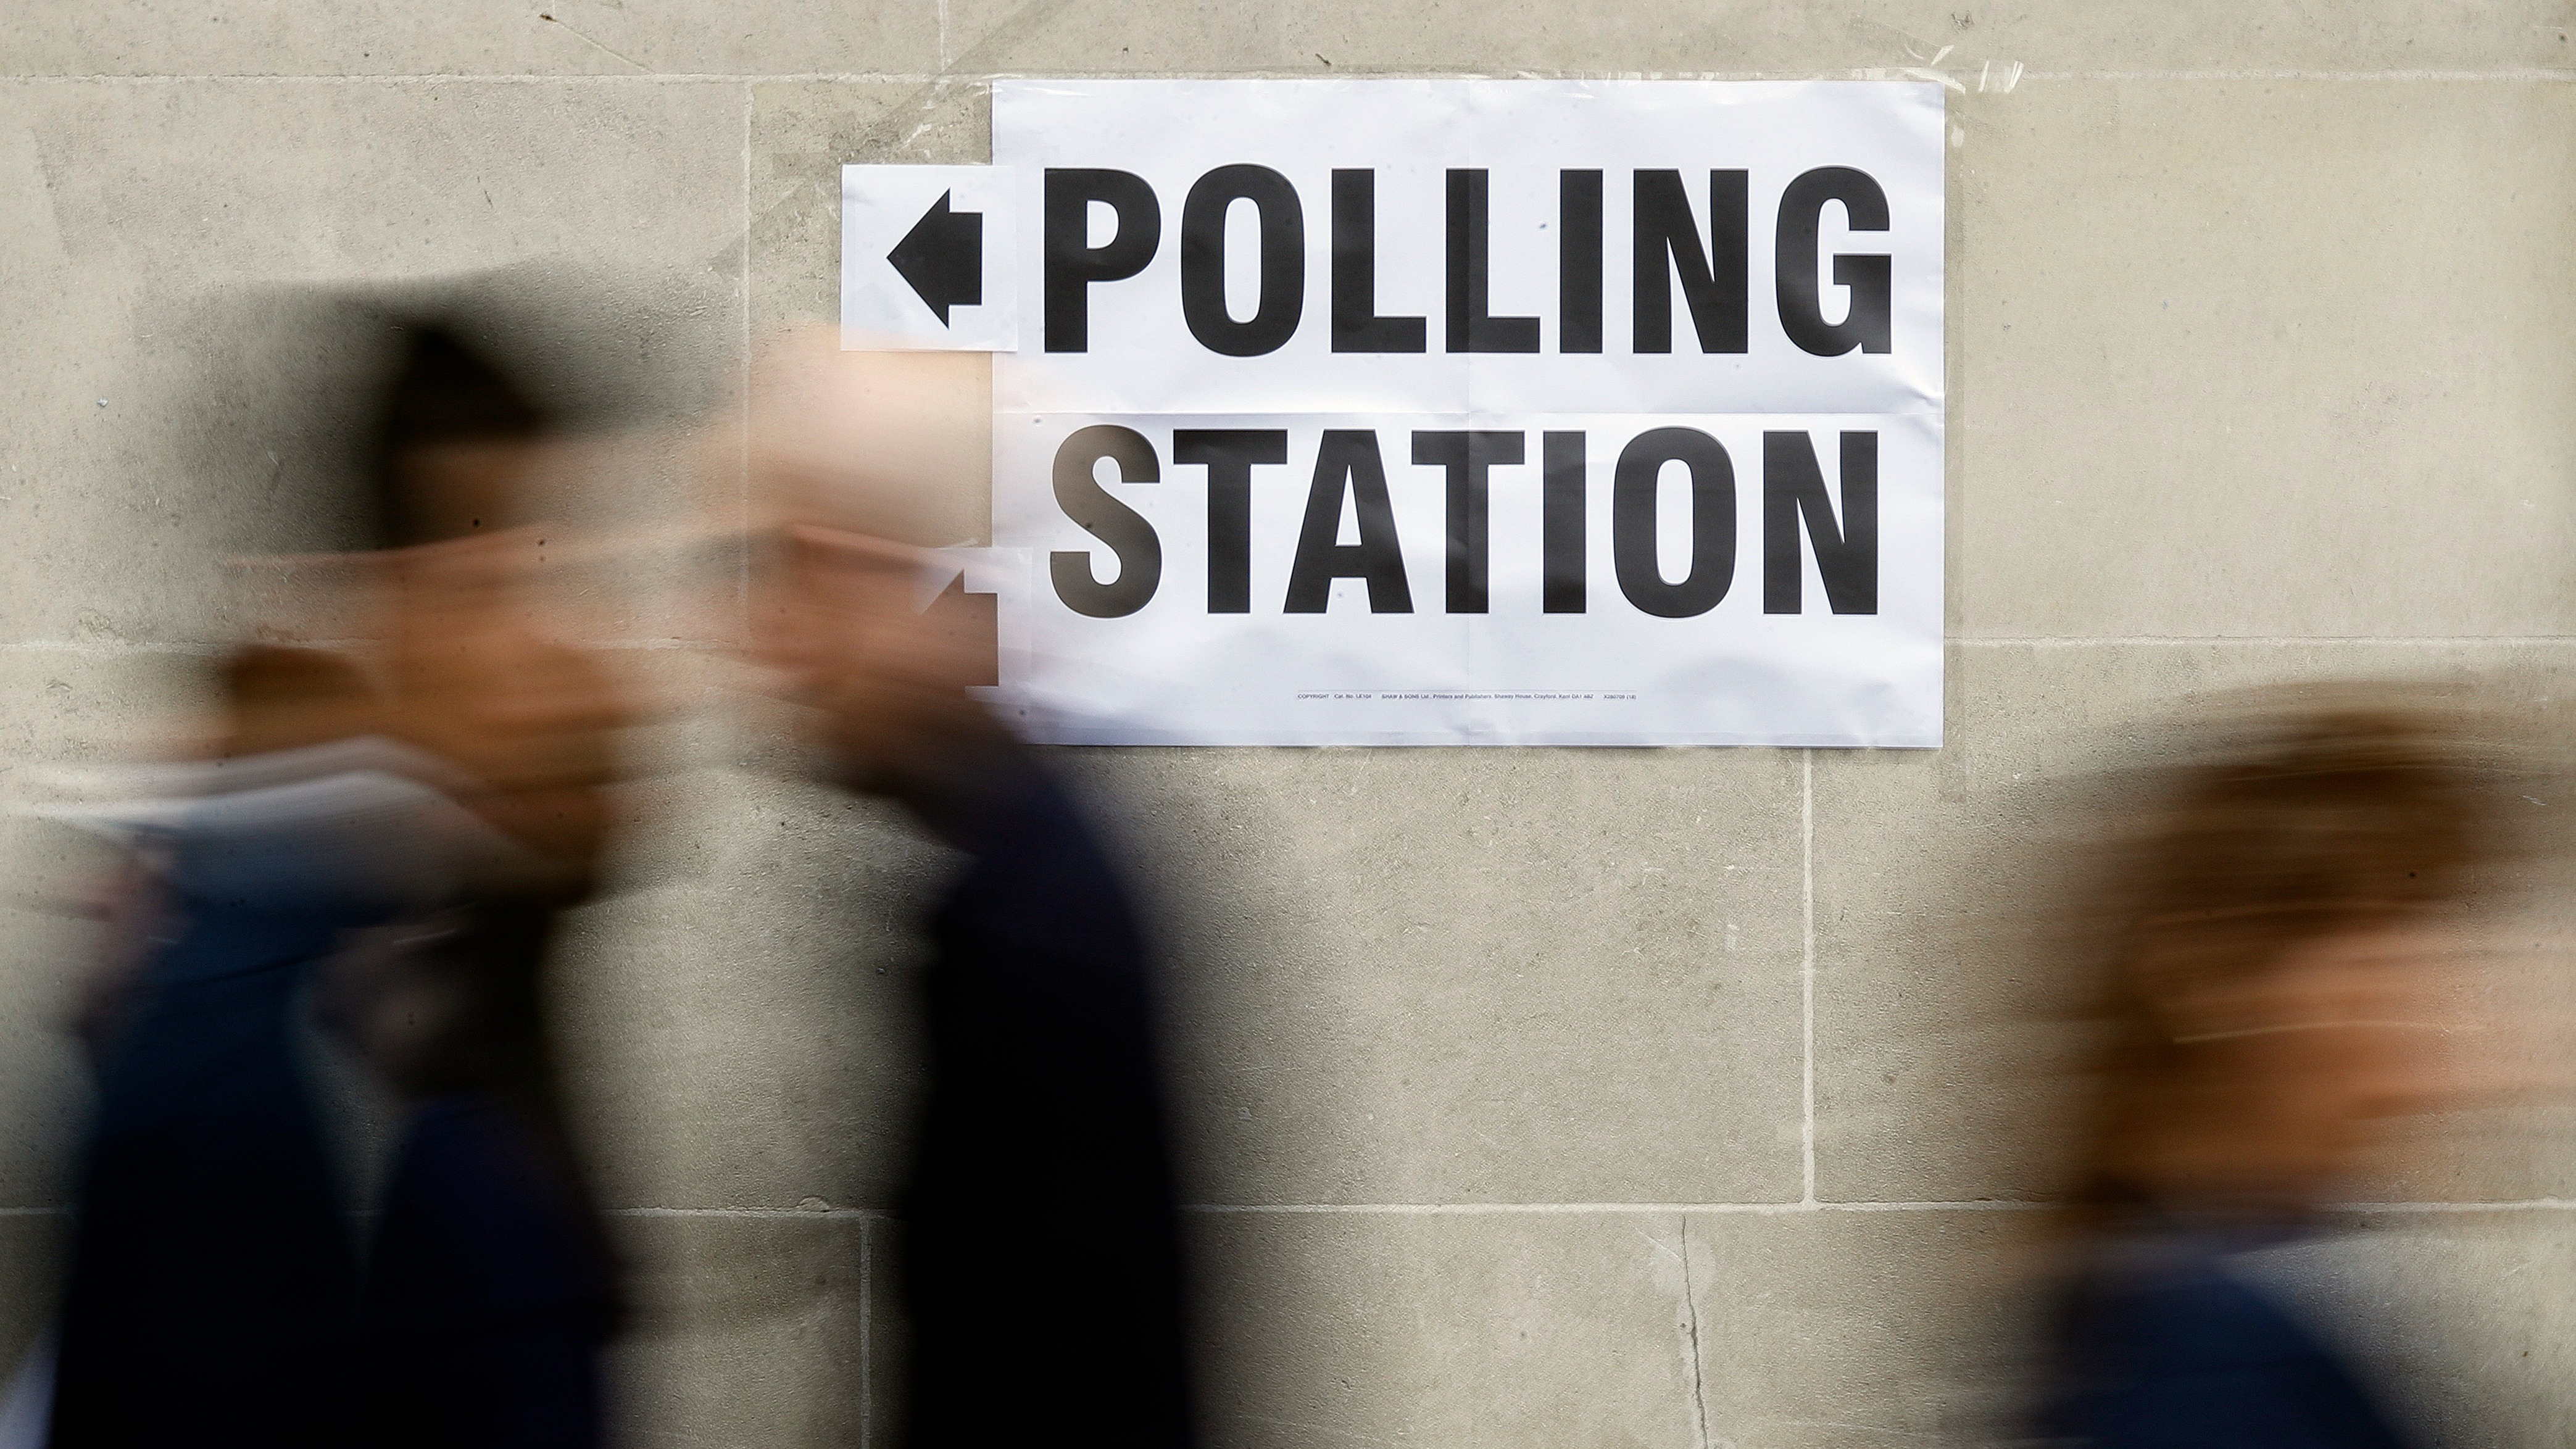 Polling stations close after 'Super Thursday' elections | ITV News